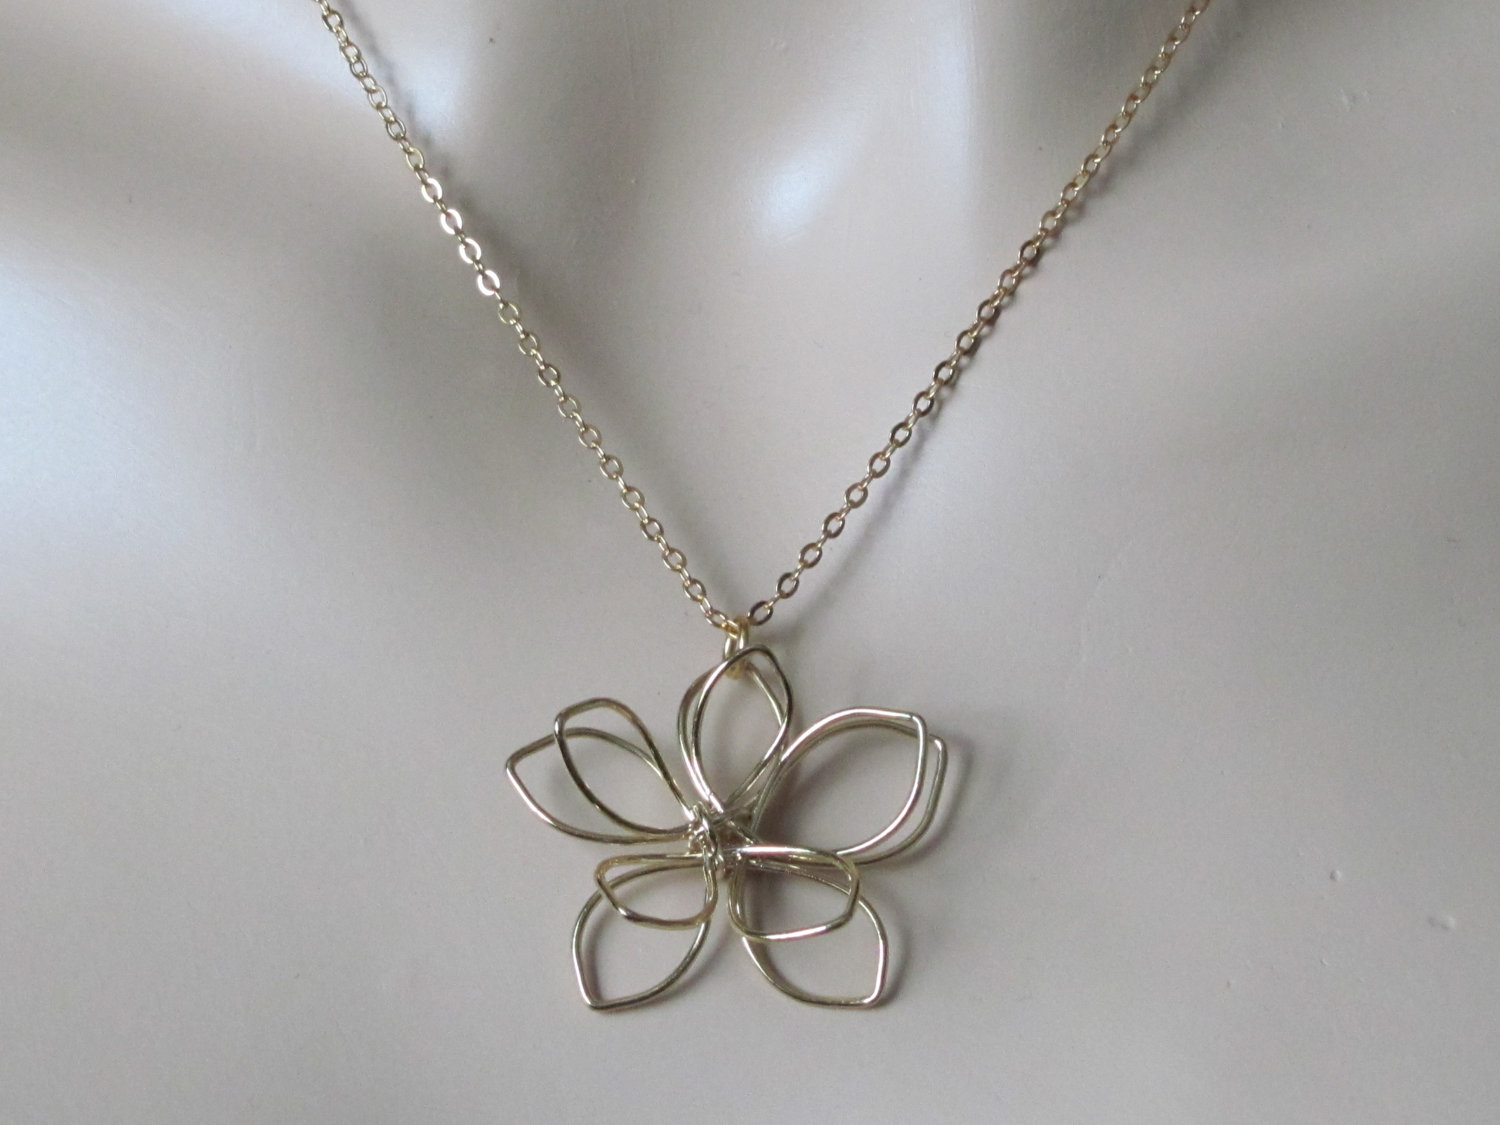 Flower Necklace Dainty Necklace Wire Necklace Wire Pendant Women